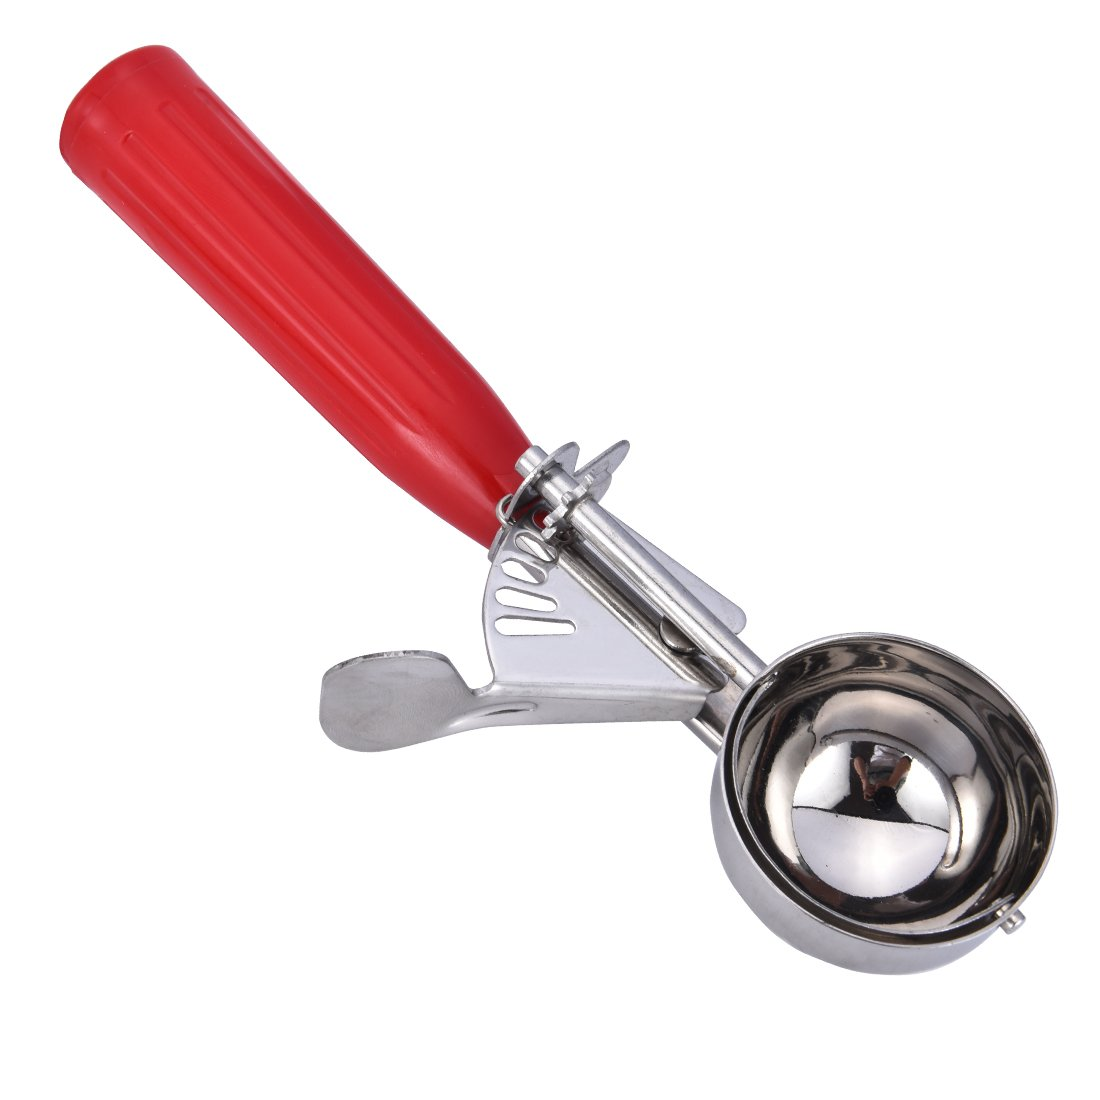 Ice Cream Scoop, Stainless Steel Scoop with Non-Slip Red Handle---(Medium) by N.E (Image #3)